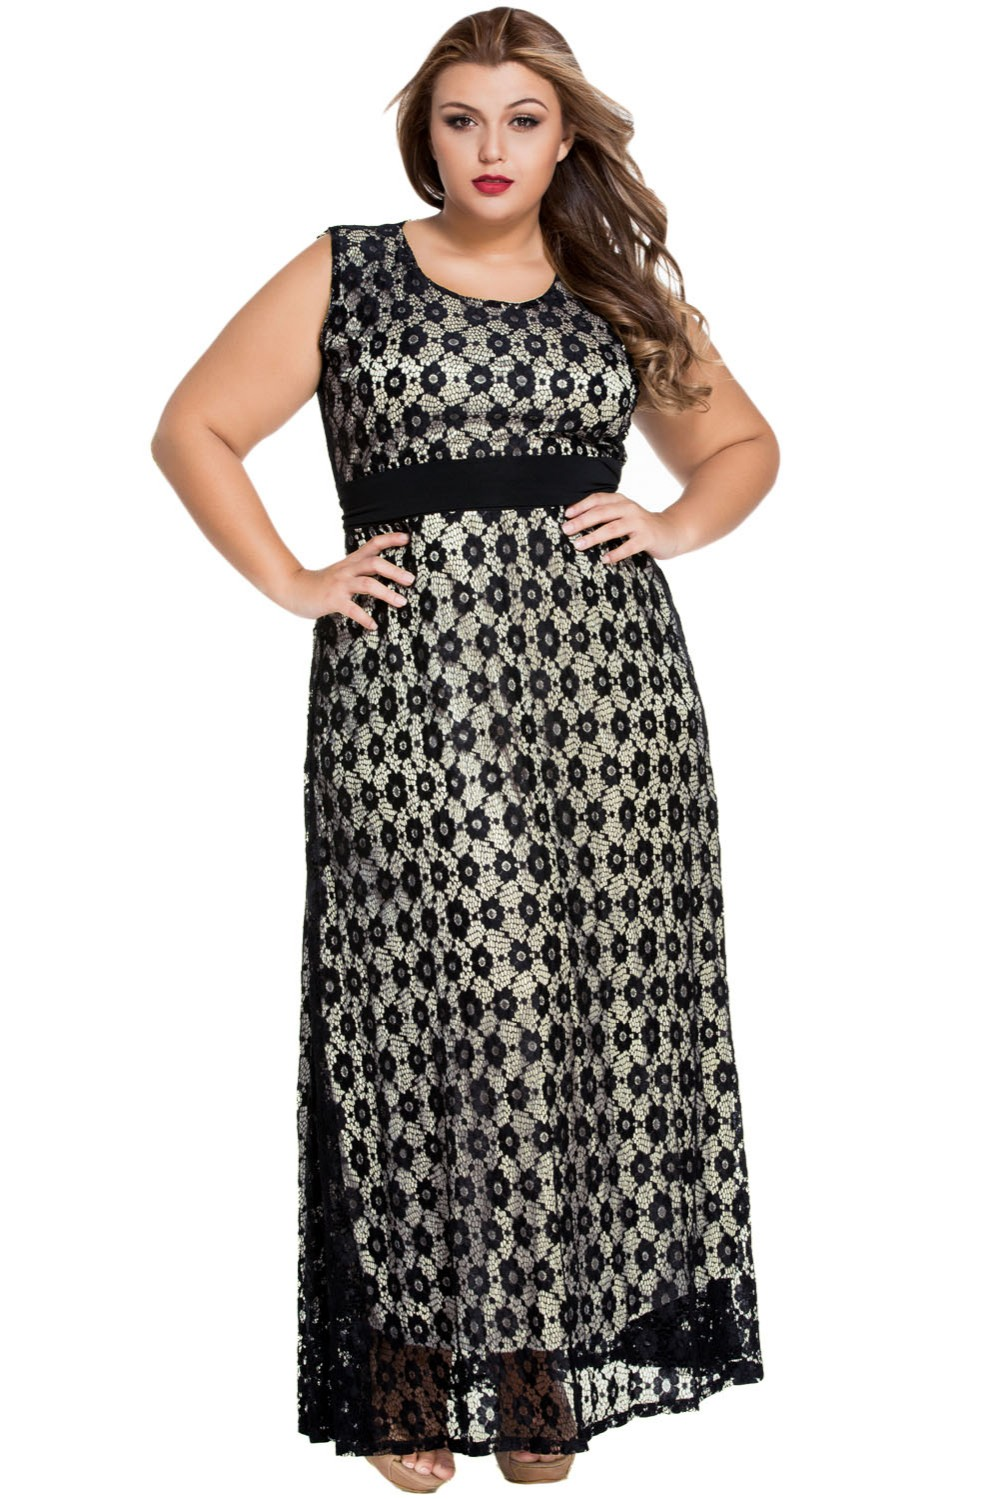 Adogirl Plus Size Summer Maxi Dresses O Neck Floral Lace Overlay